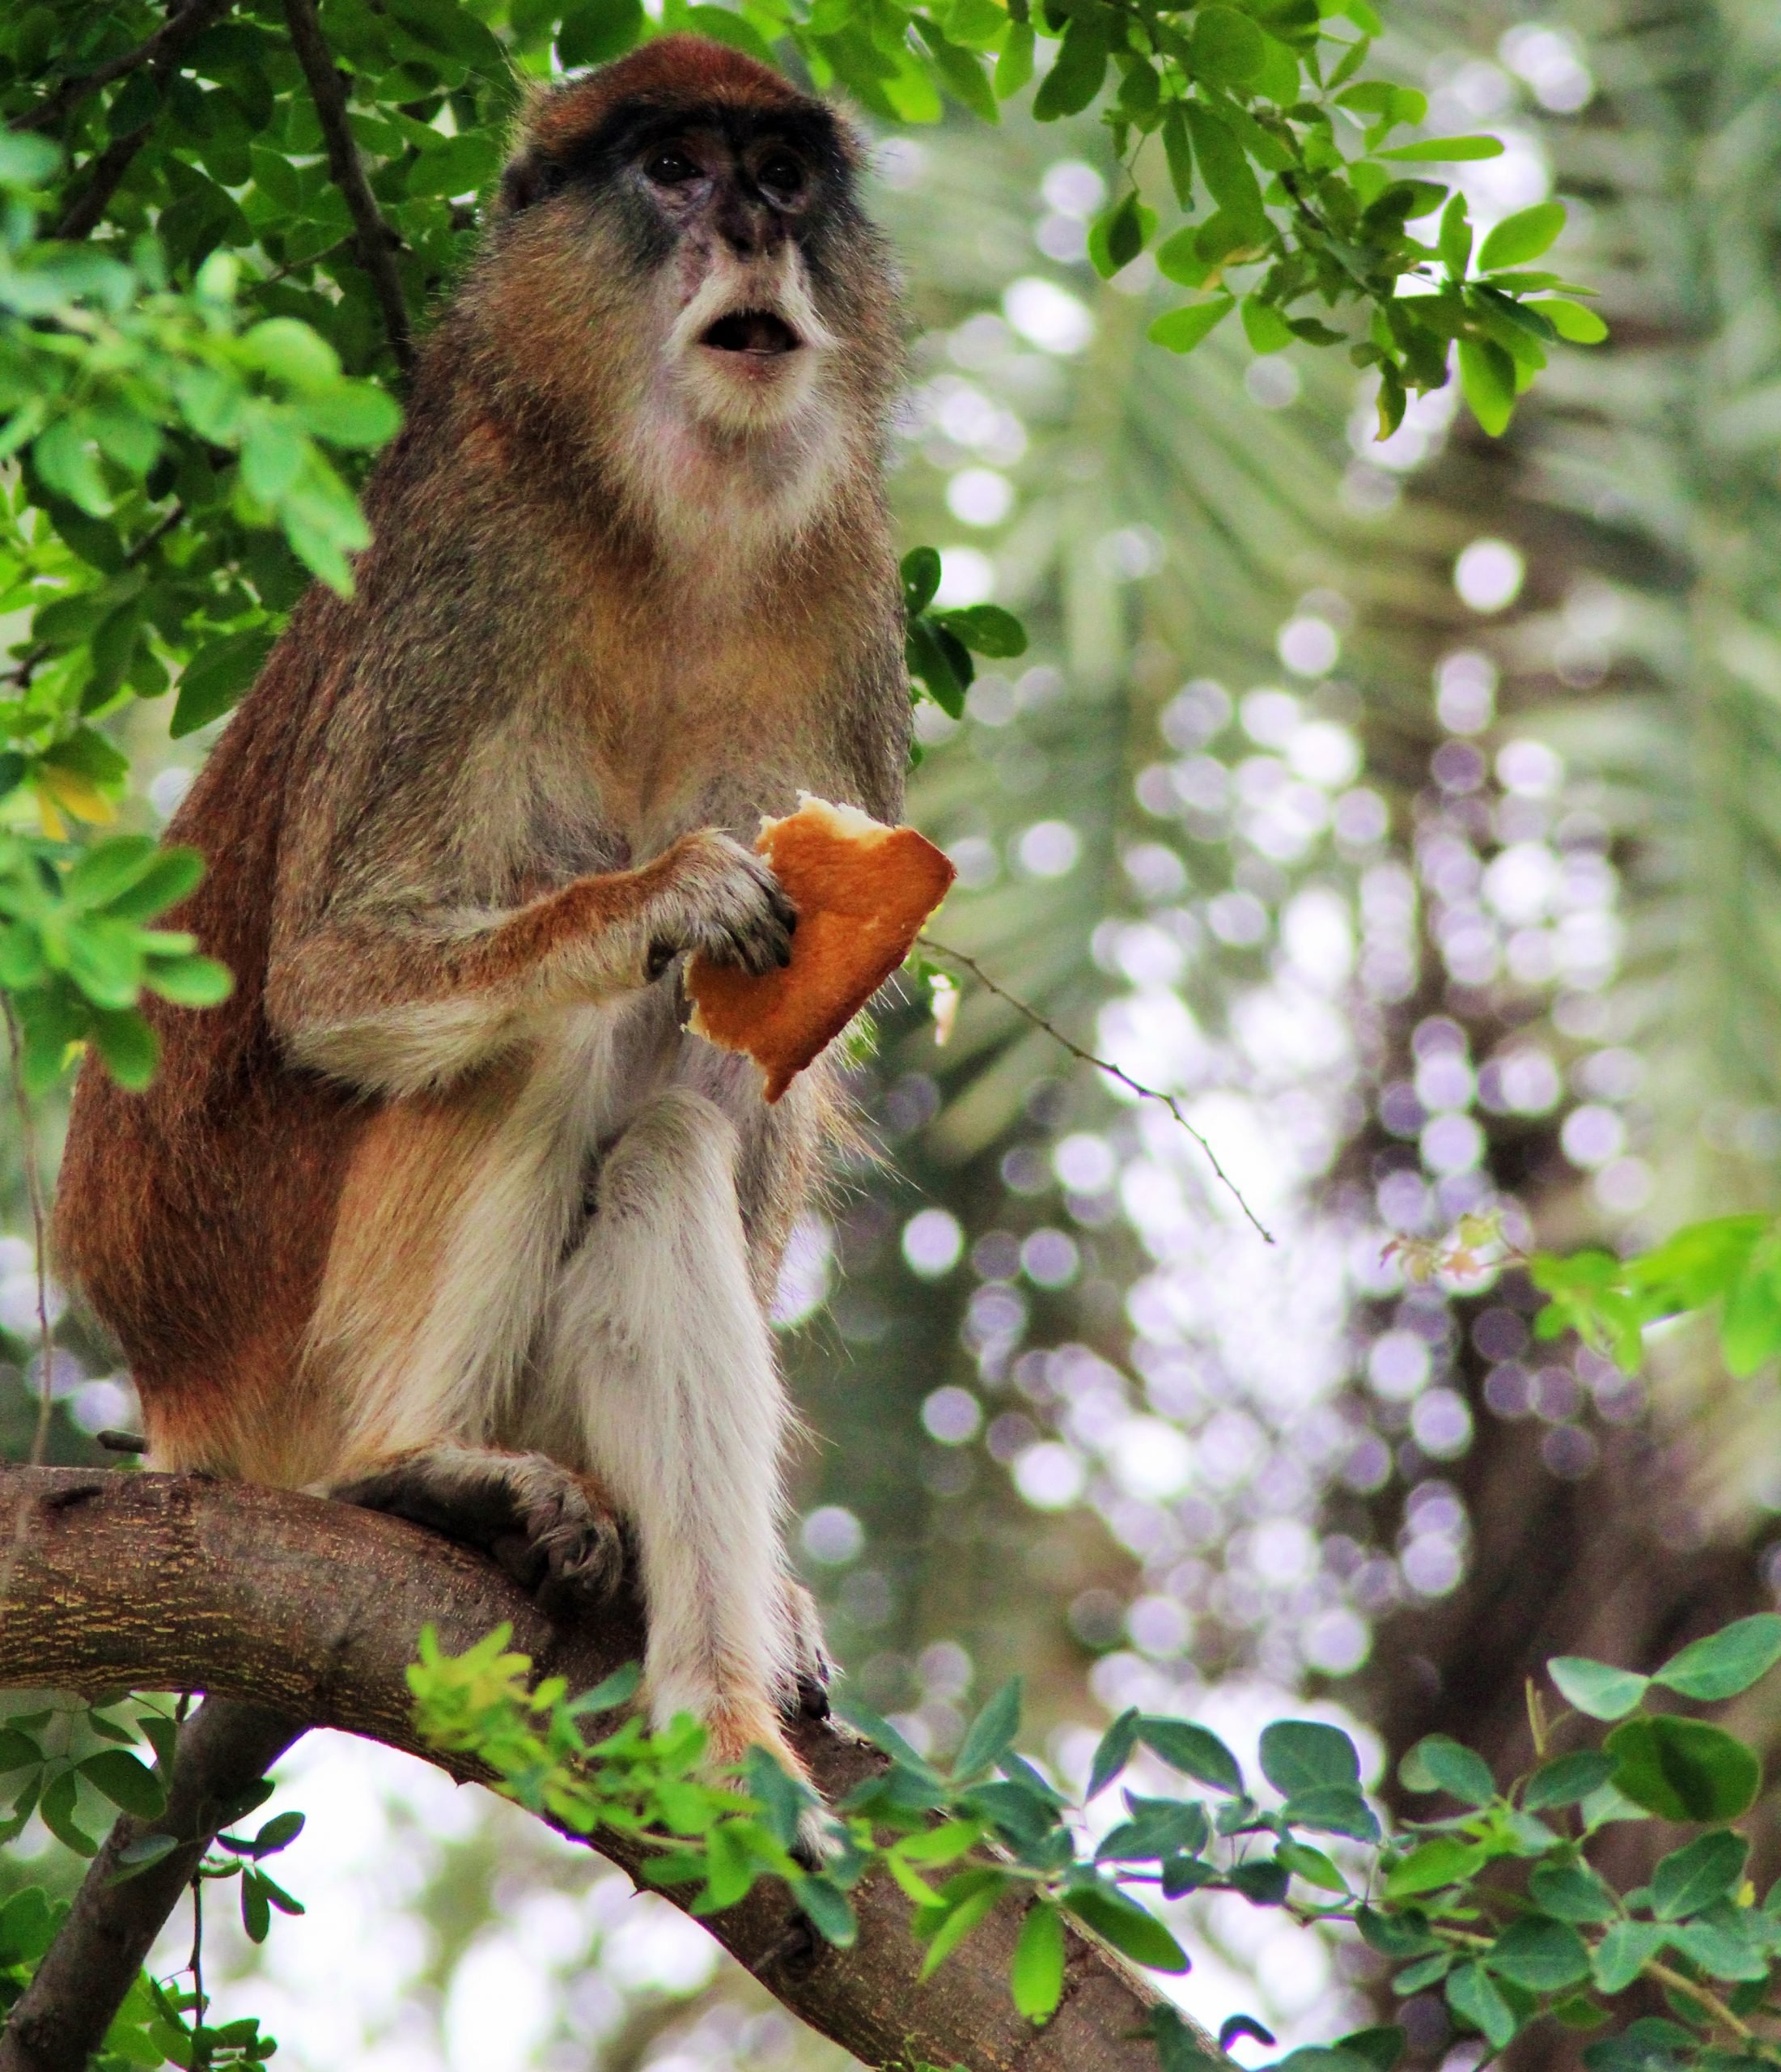 Monkey with bread in hand